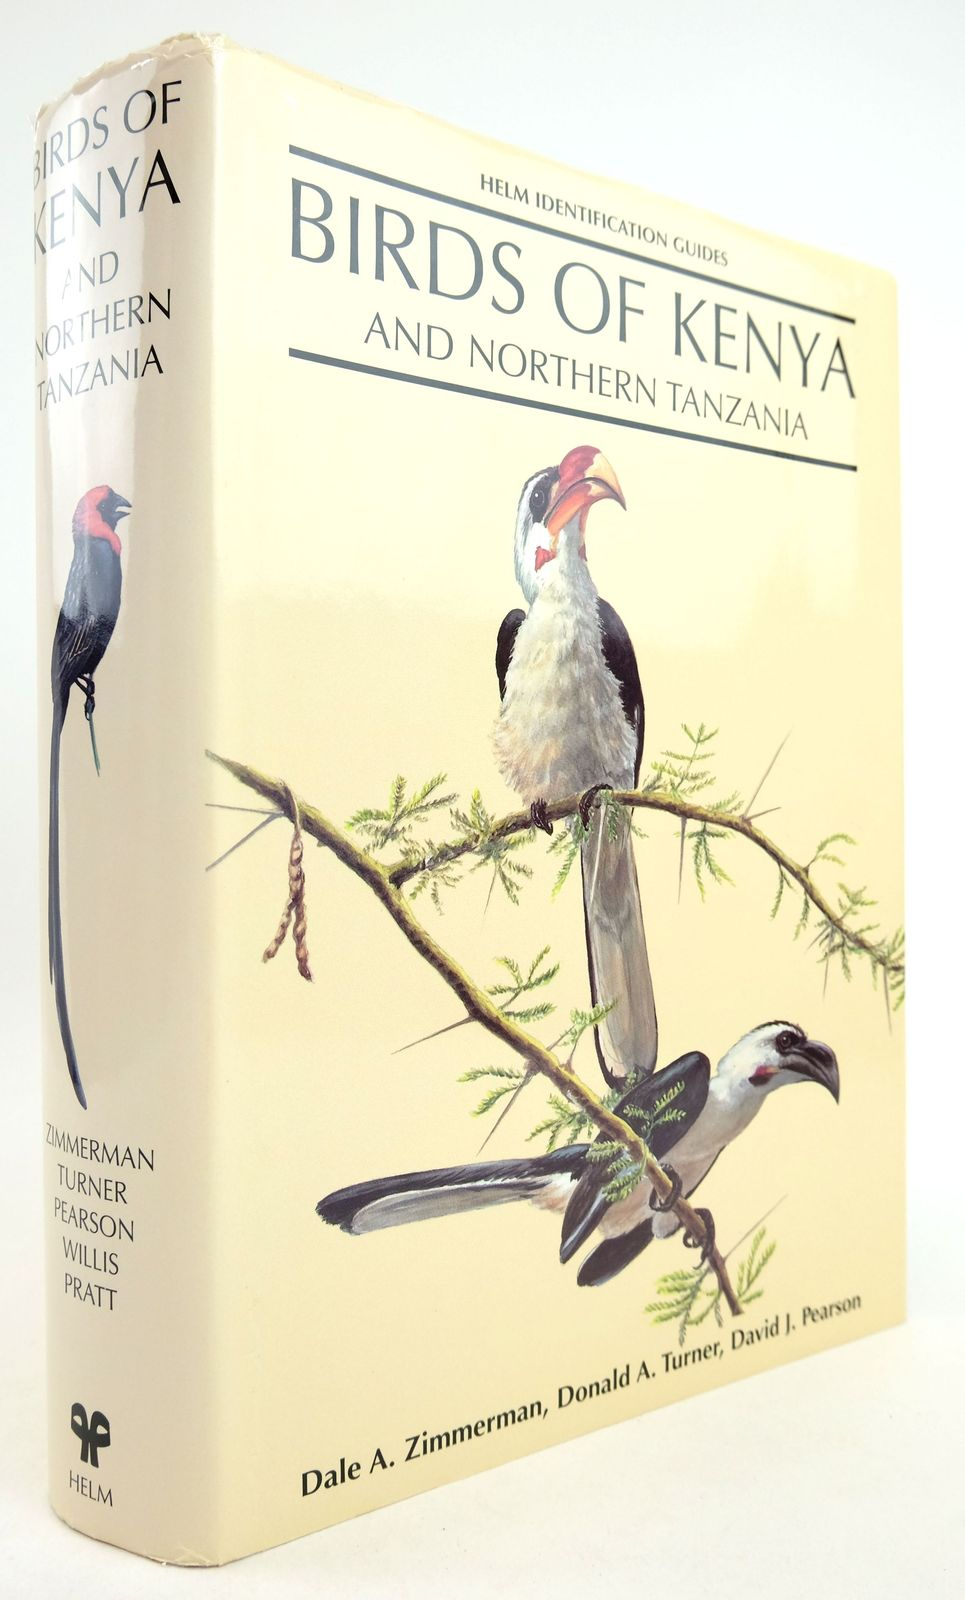 Photo of BIRDS OF KENYA AND NORTHERN TANZANIA (HELM IDENTIFICATION GUIDES) written by Zimmerman, Dale A. Turner, Donald A. Pearson, David J. illustrated by Zimmerman, Dale A. Willis, Ian Pratt, H. Douglas published by Christopher Helm (STOCK CODE: 1819317)  for sale by Stella & Rose's Books